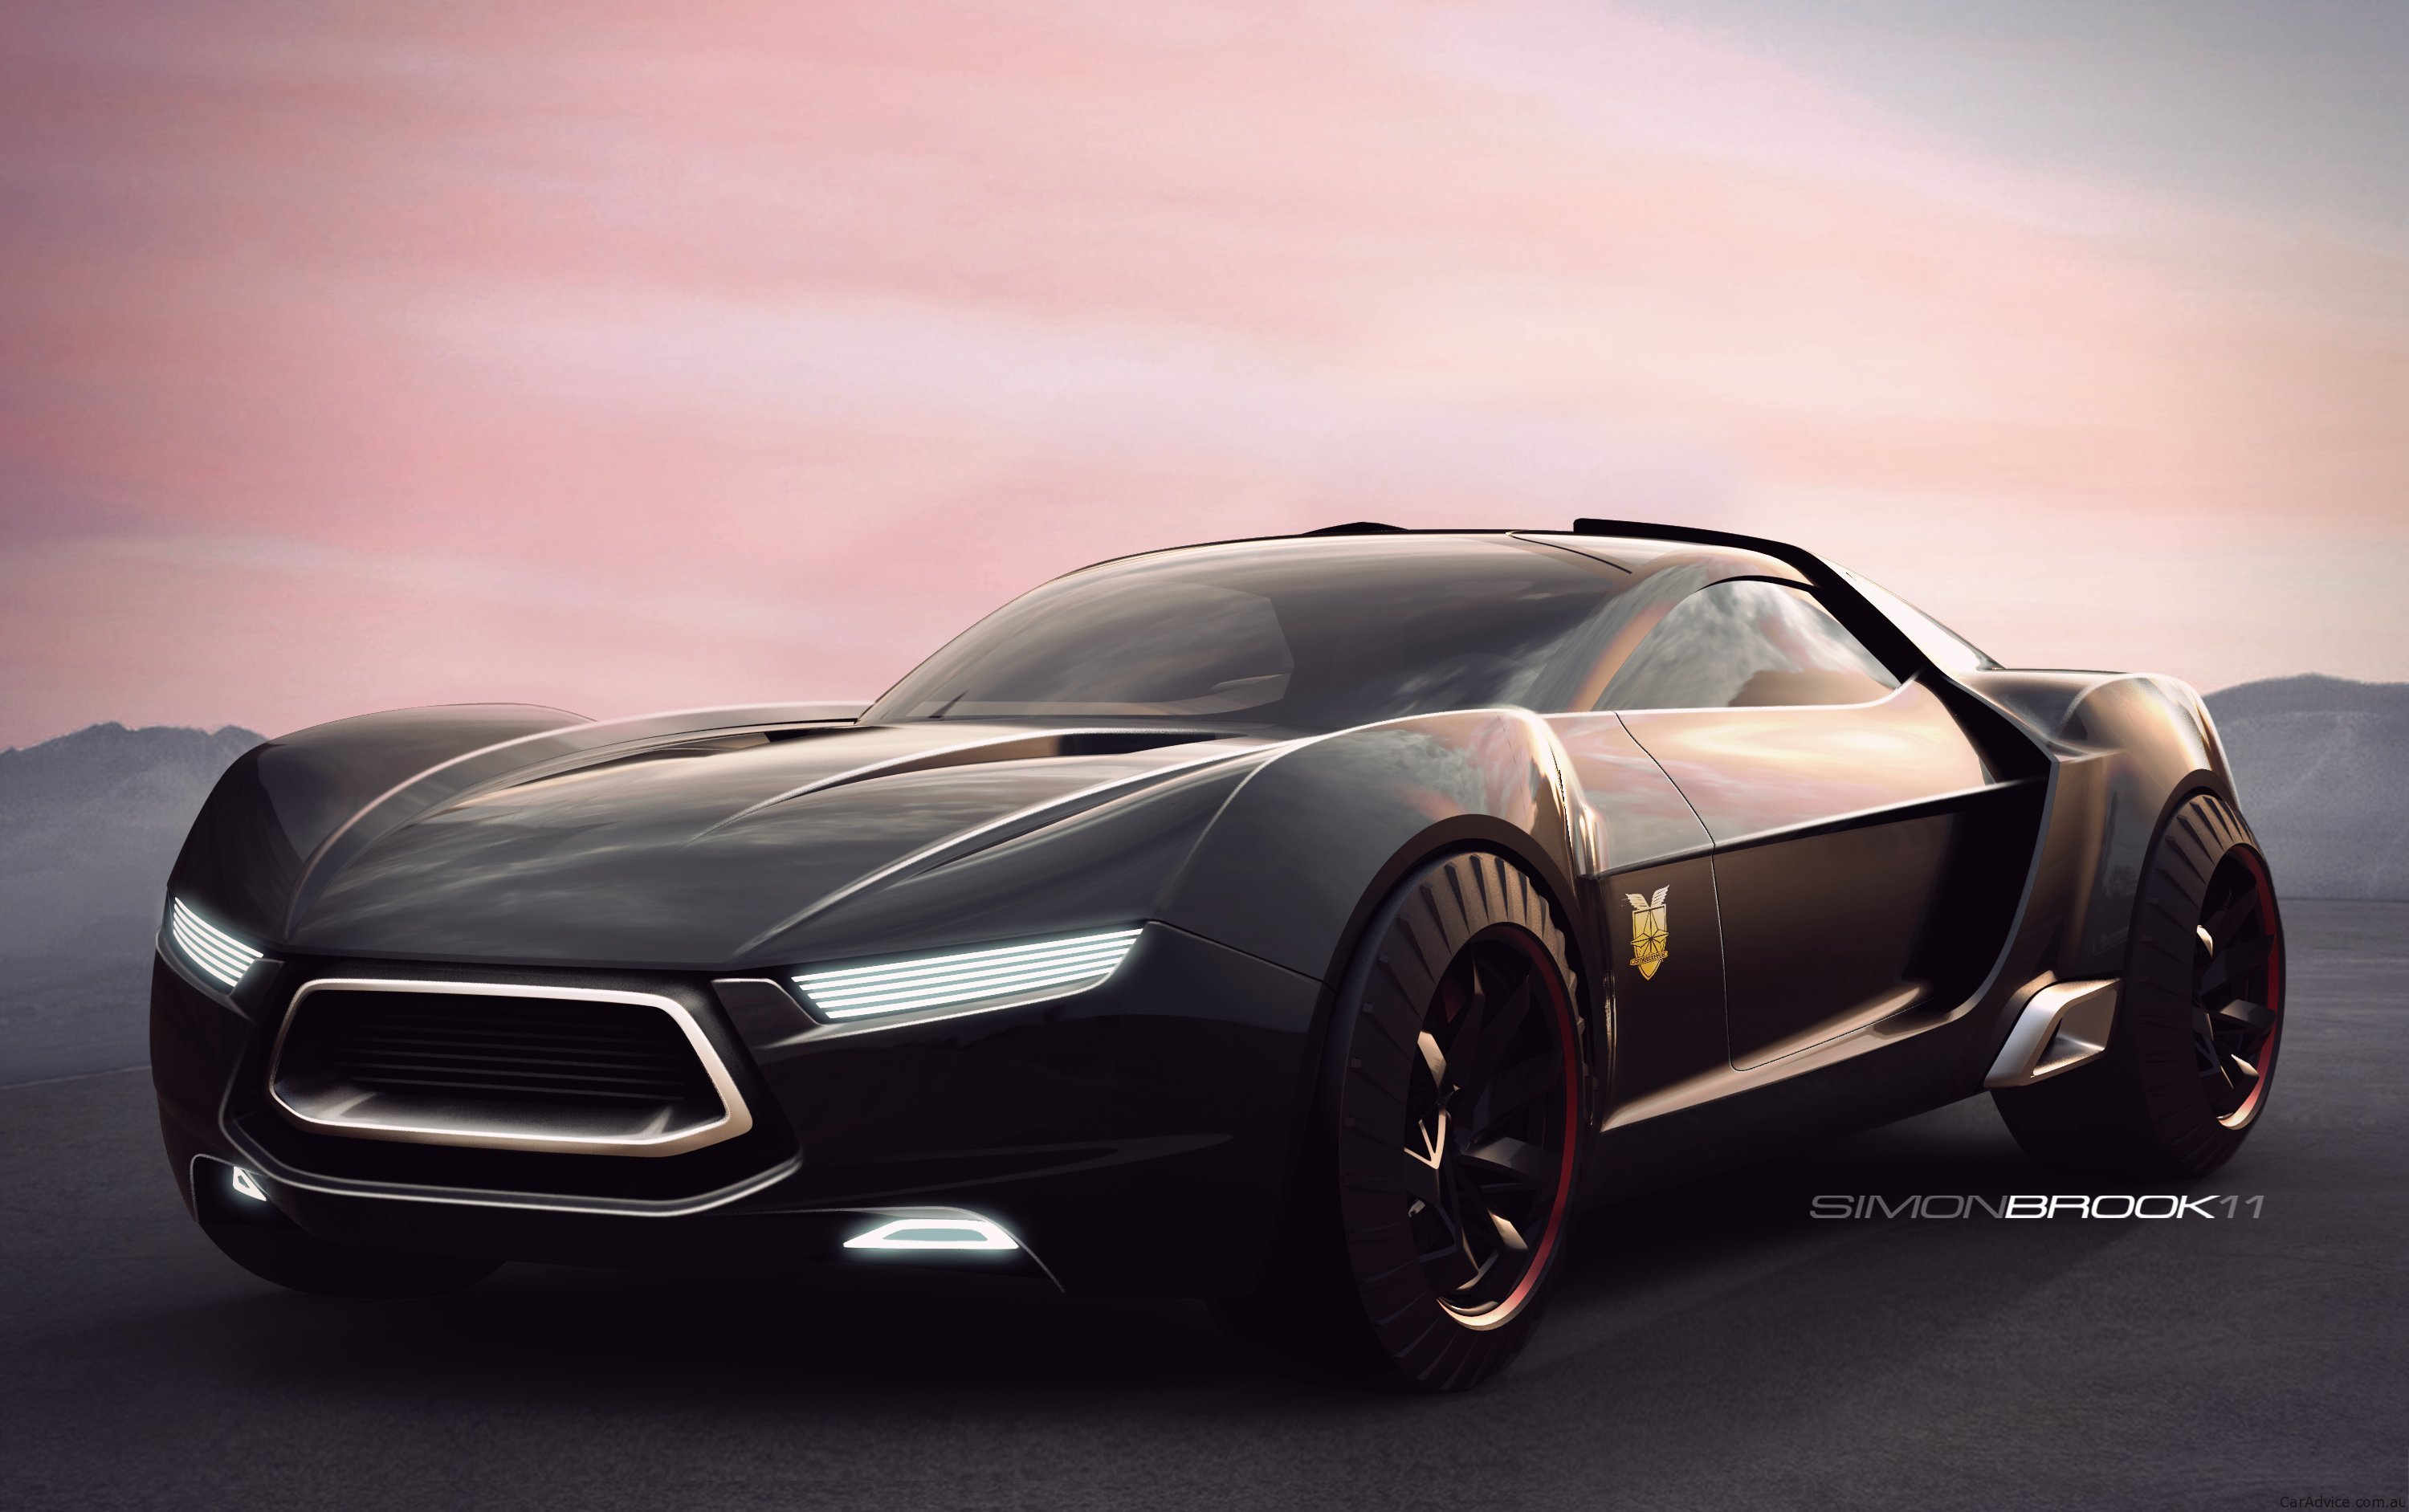 Latest Ford Australia Mad Max 4 Interceptor Concepts Photos 1 Free Download